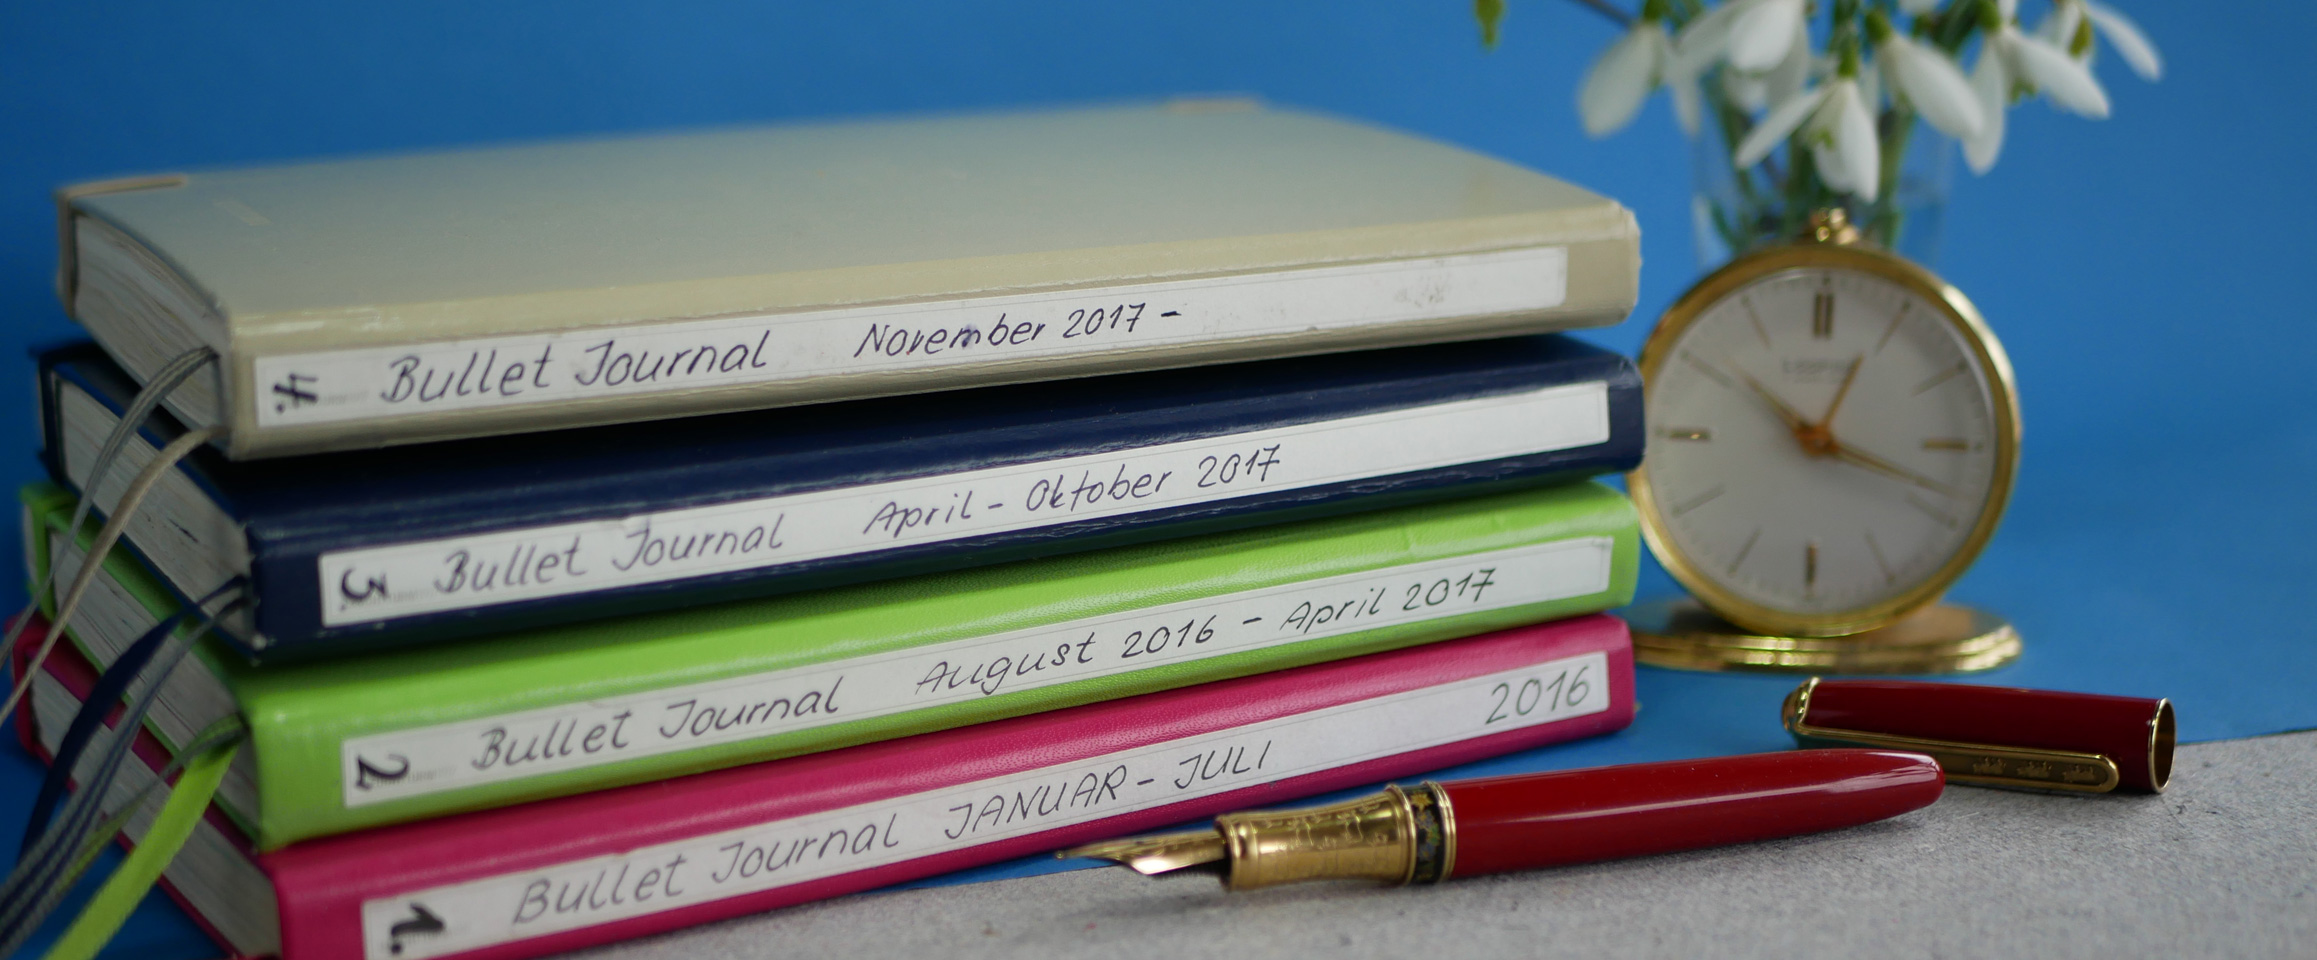 Bullet Journal Inspiration Ideen Tipps